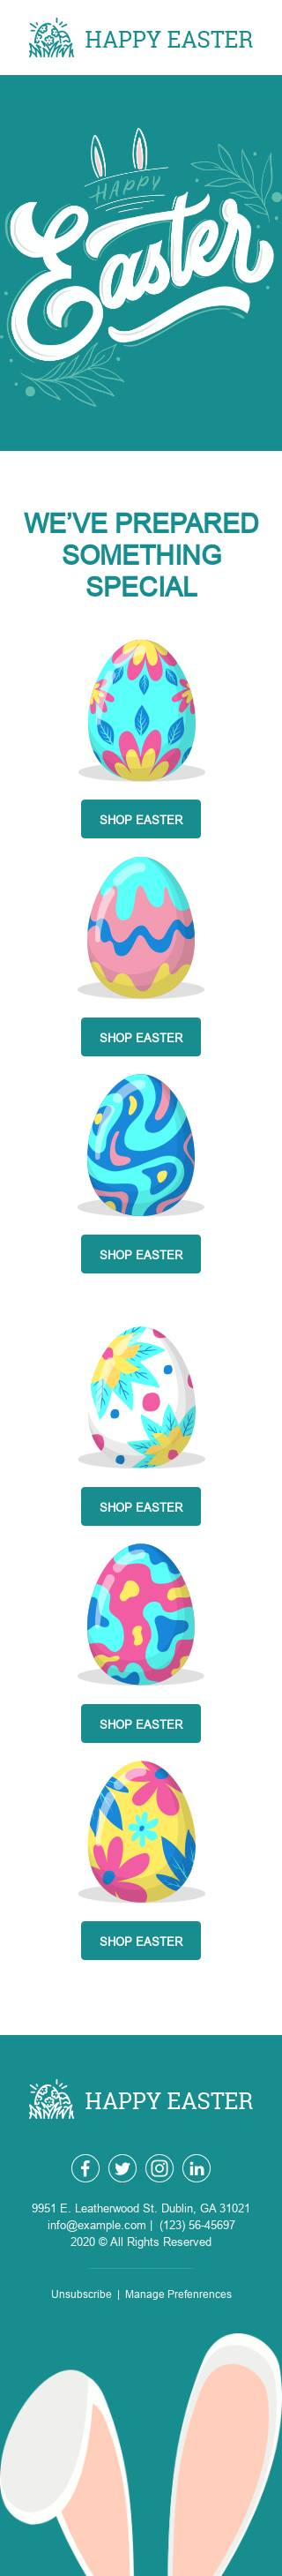 Special Easter email template